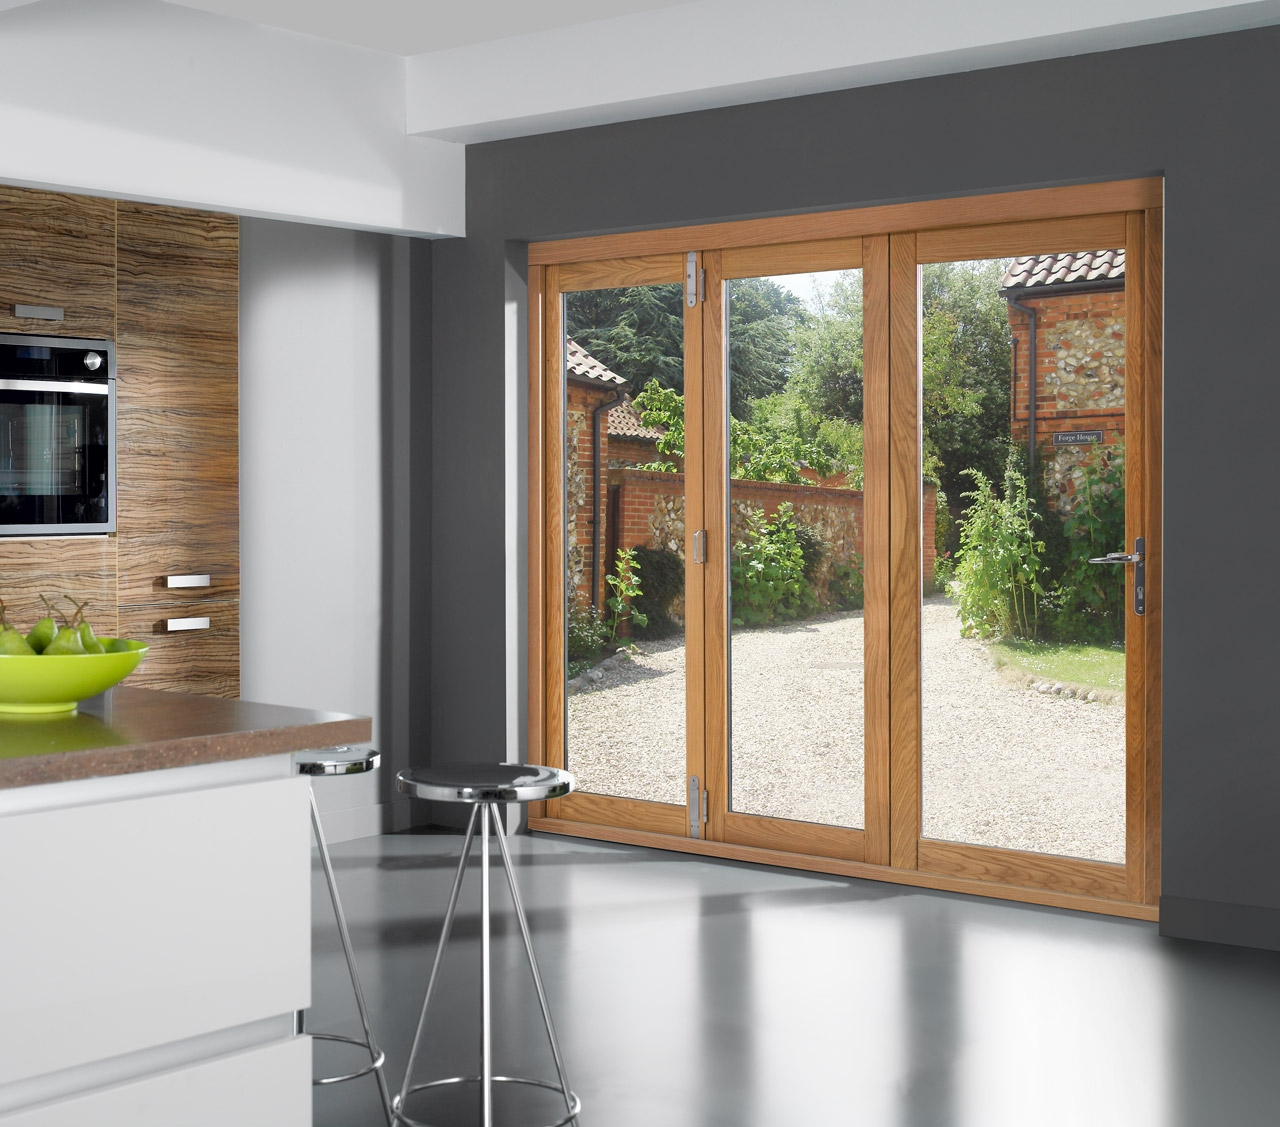 Oak Slide And Fold Patio Doorsdont you hate it when your window blocks your view my